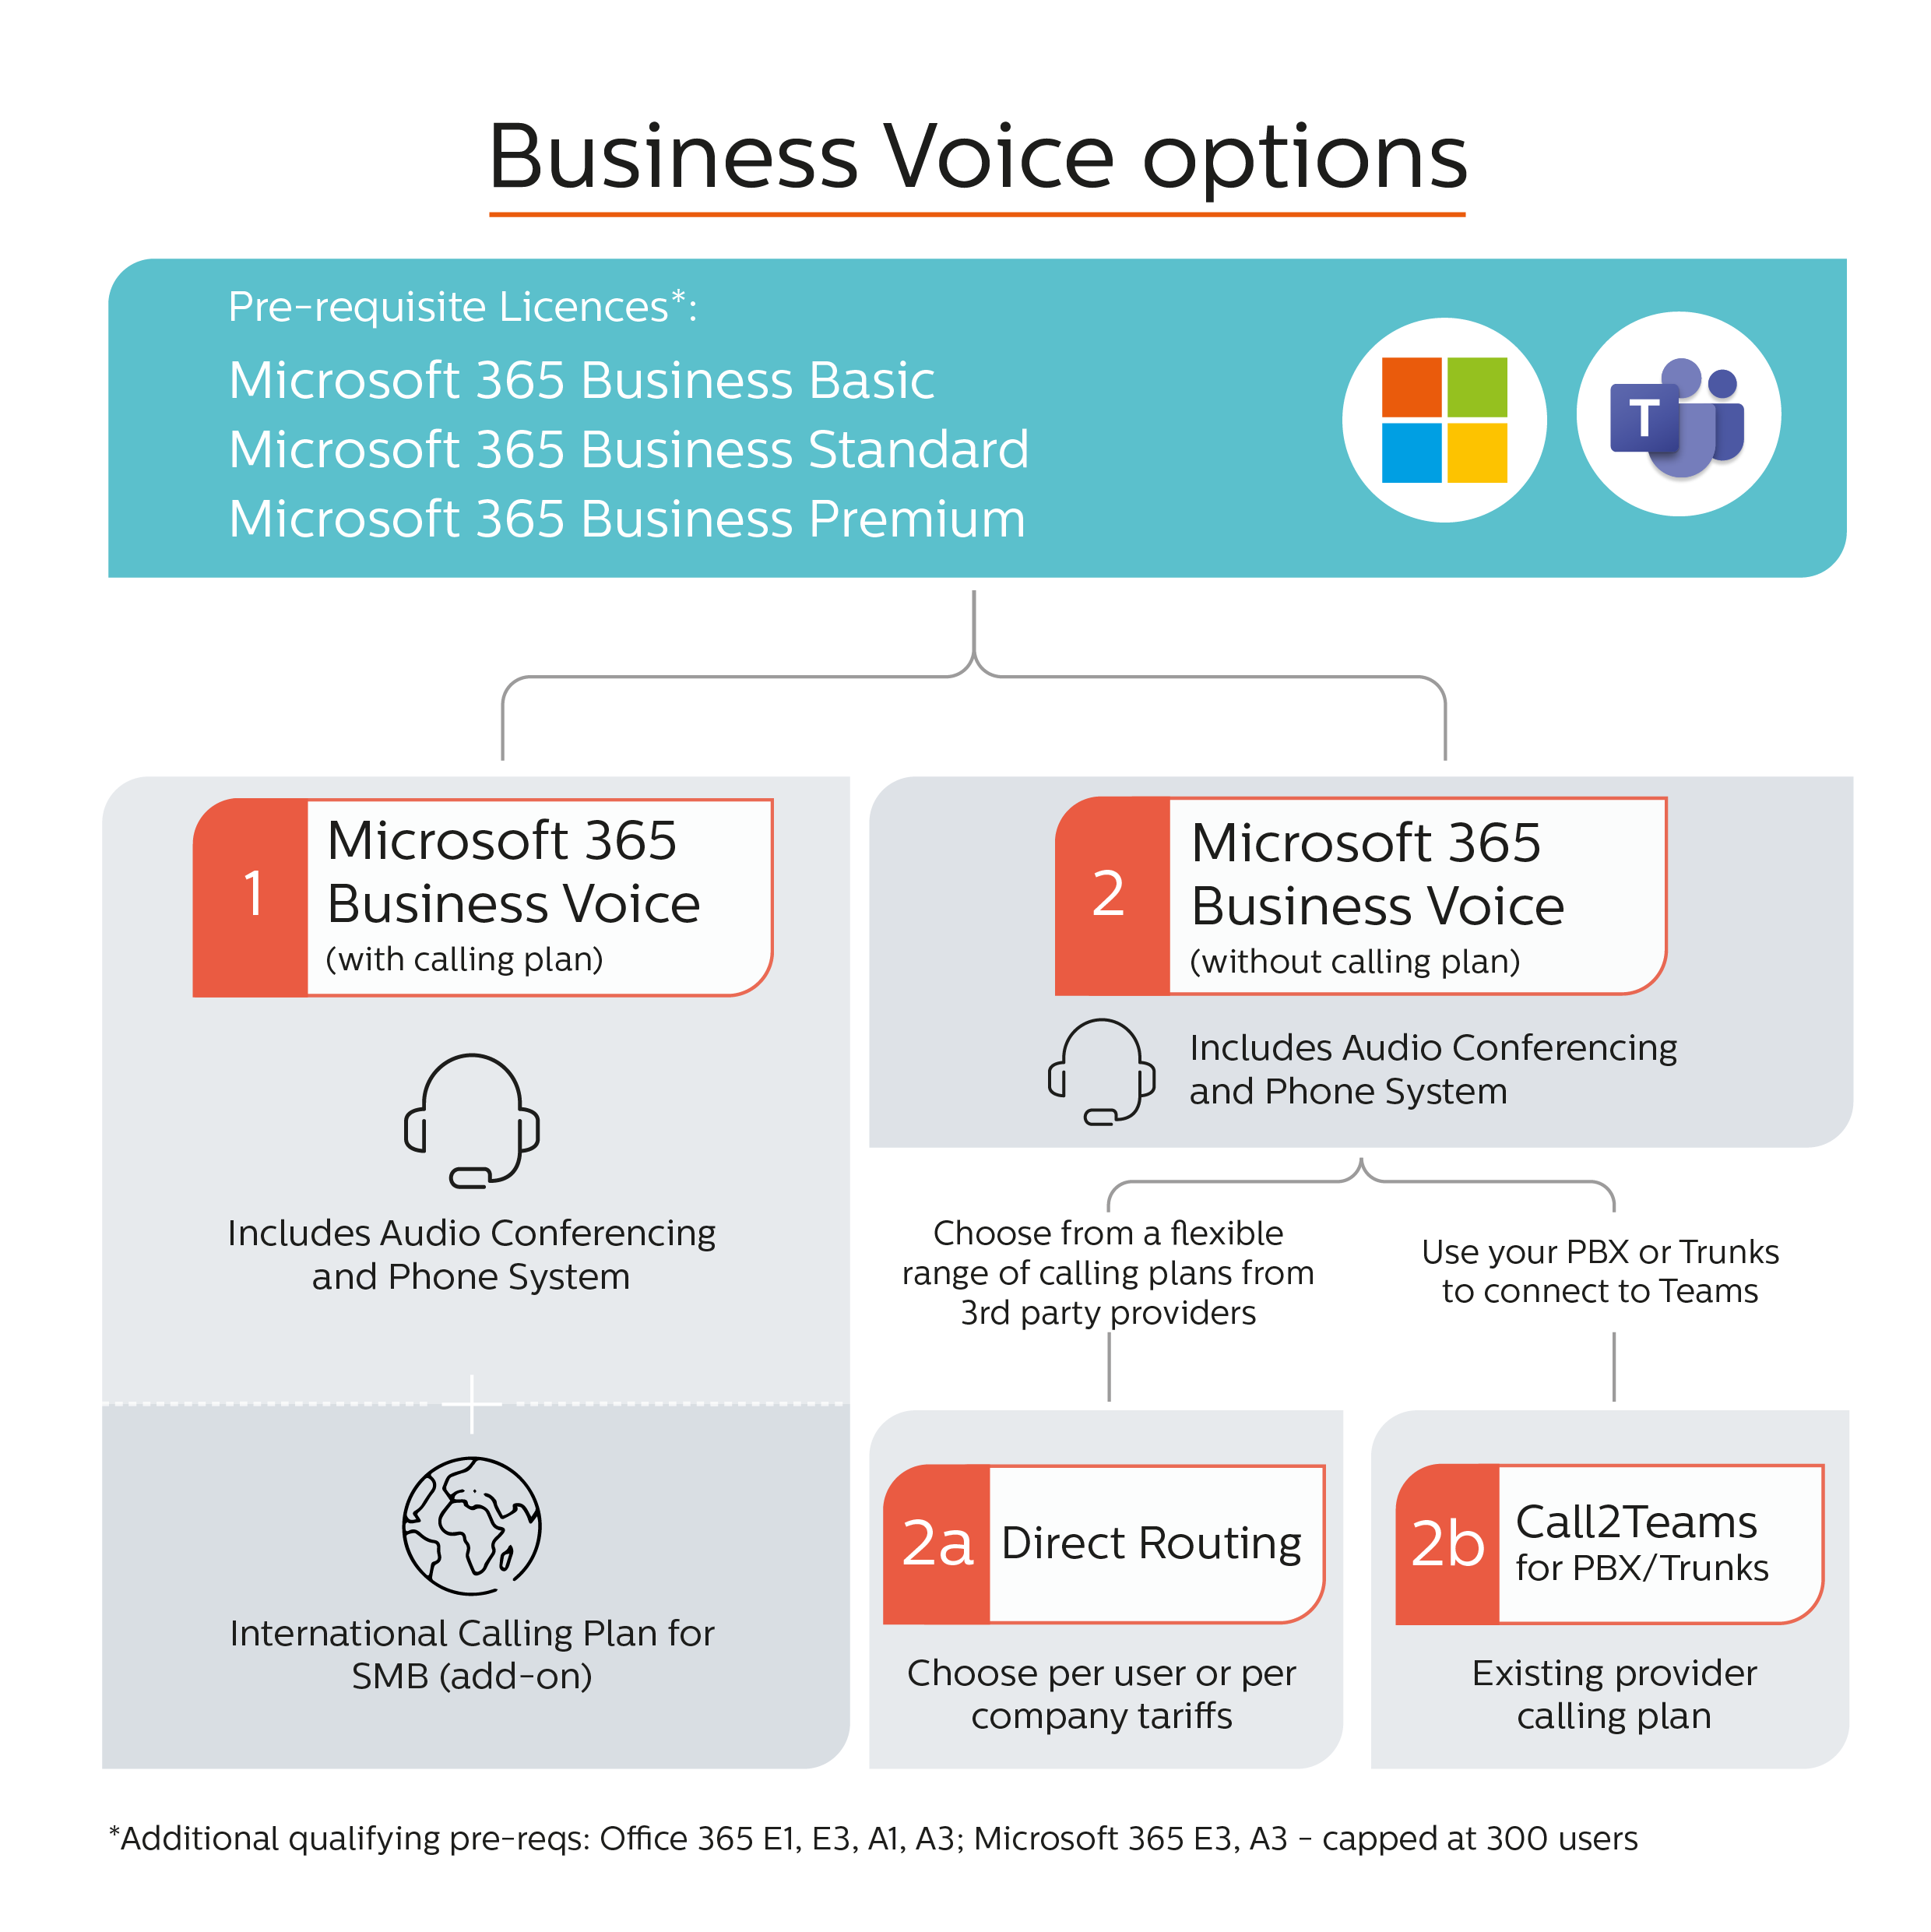 Microsoft Business Voice